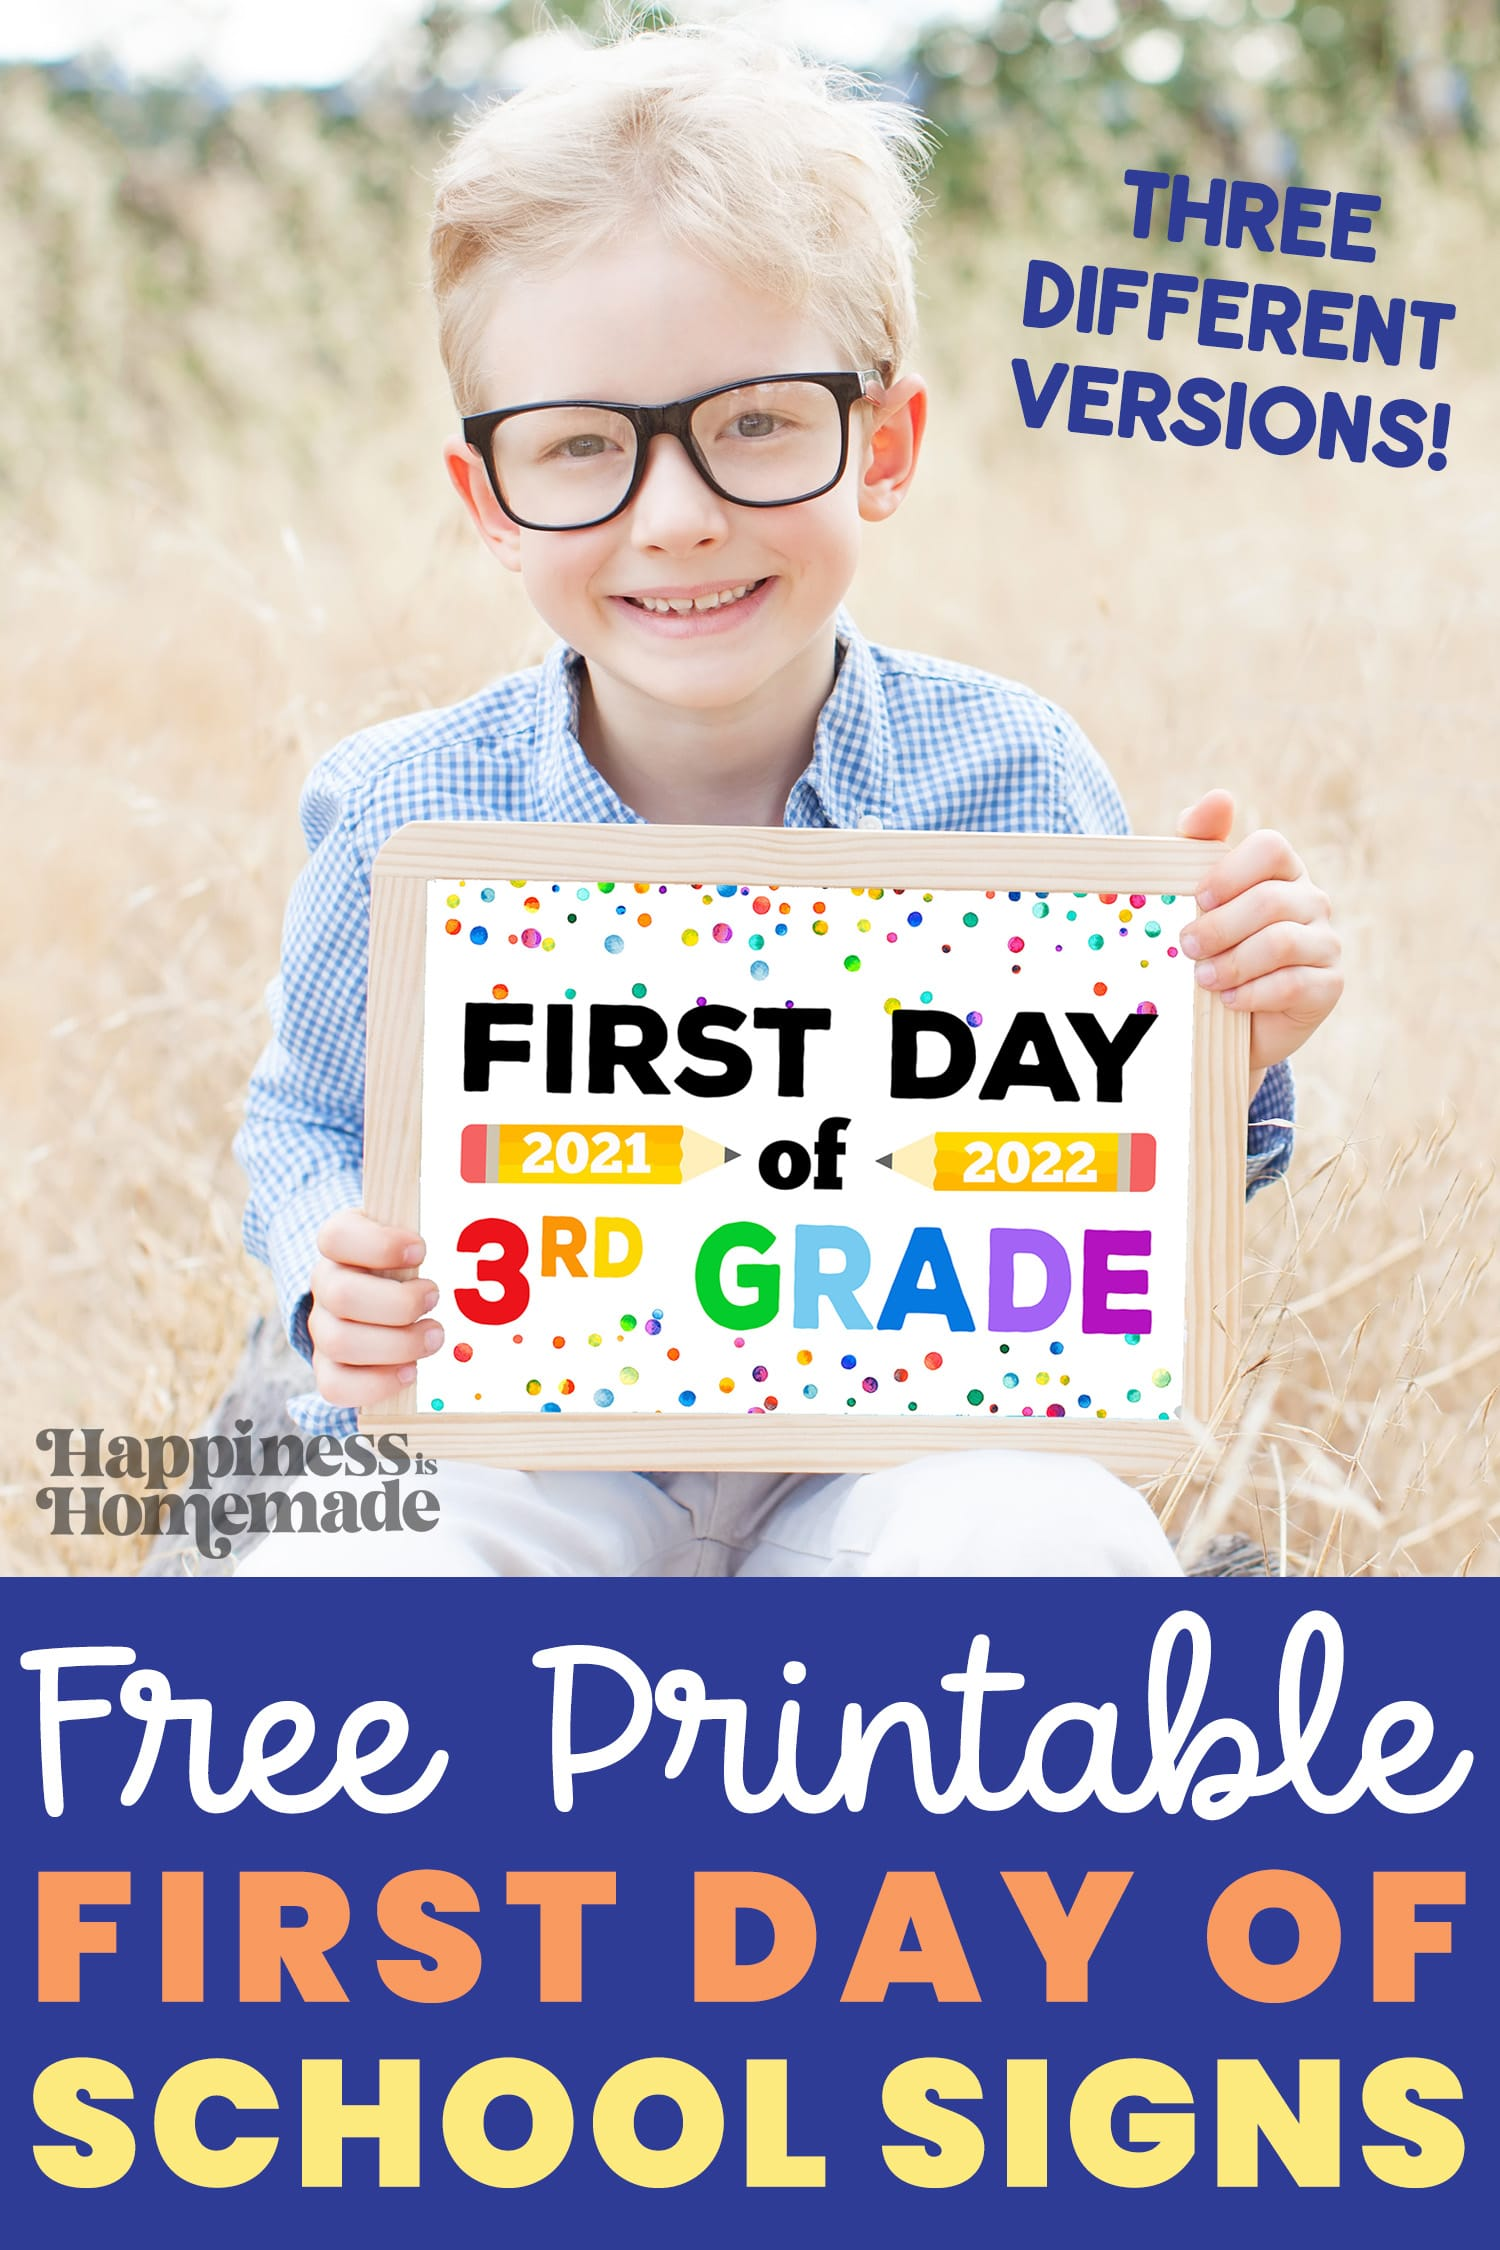 Cute blonde boy with glasses holding a printable First Day of School Sign 2021 2022